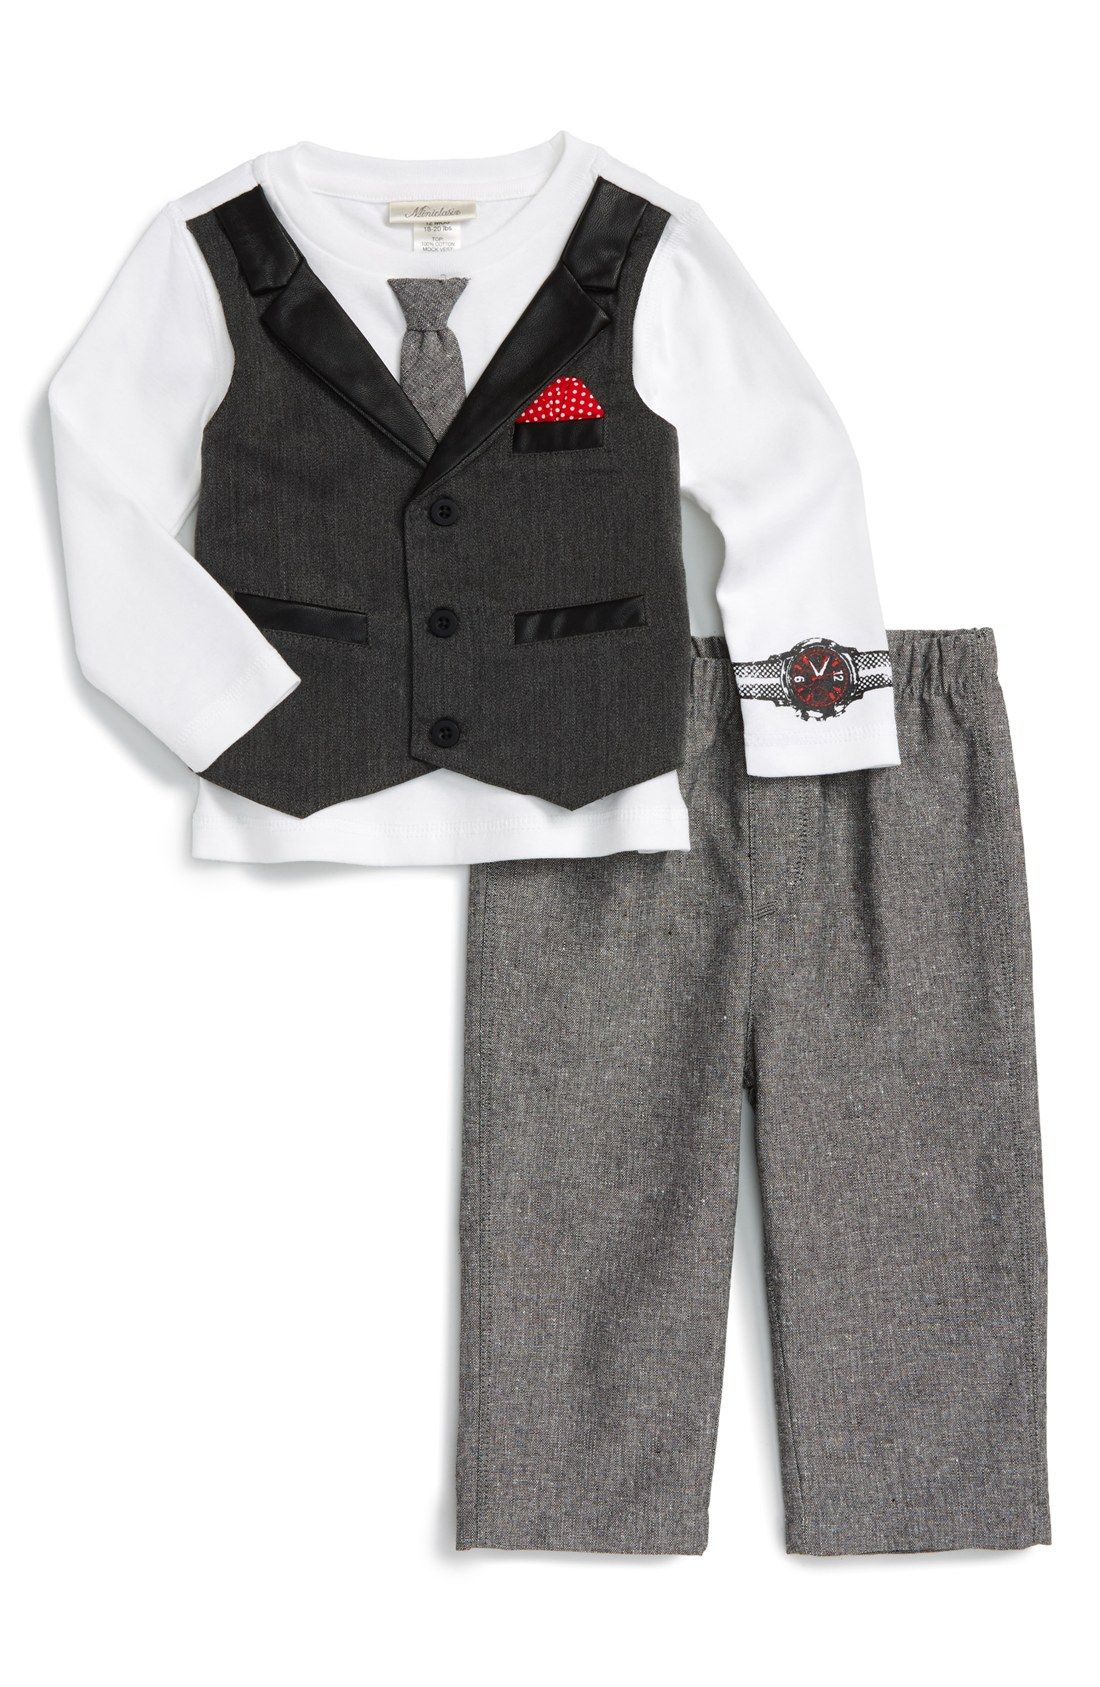 3 year old boy hairstyles free shipping and returns on miniclasix top u pants set baby boys